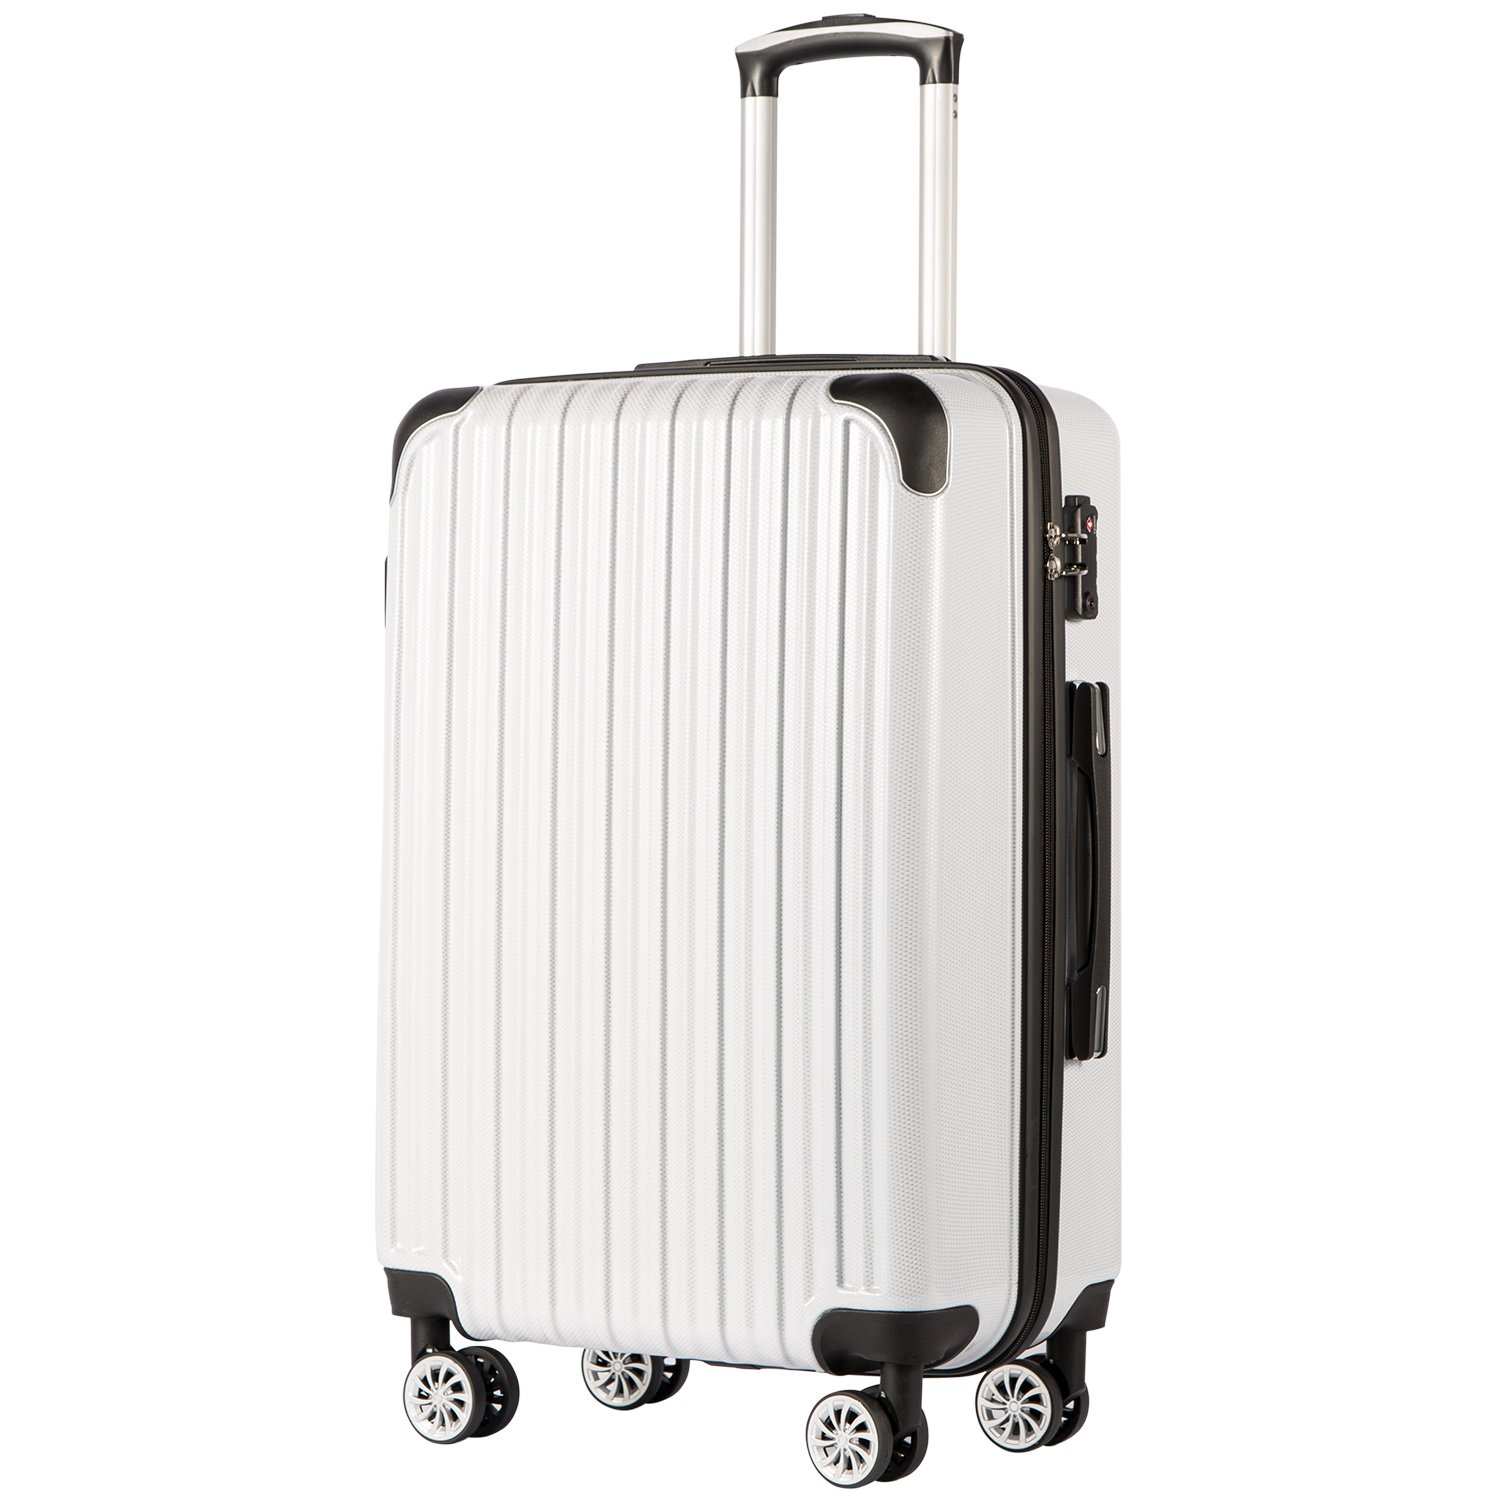 COOLIFE Luggage Expandable(only 28'') Suitcase PC+ABS Spinner 20in 24in 28in Carry on (White Grid New, S(20in)_Carry on)